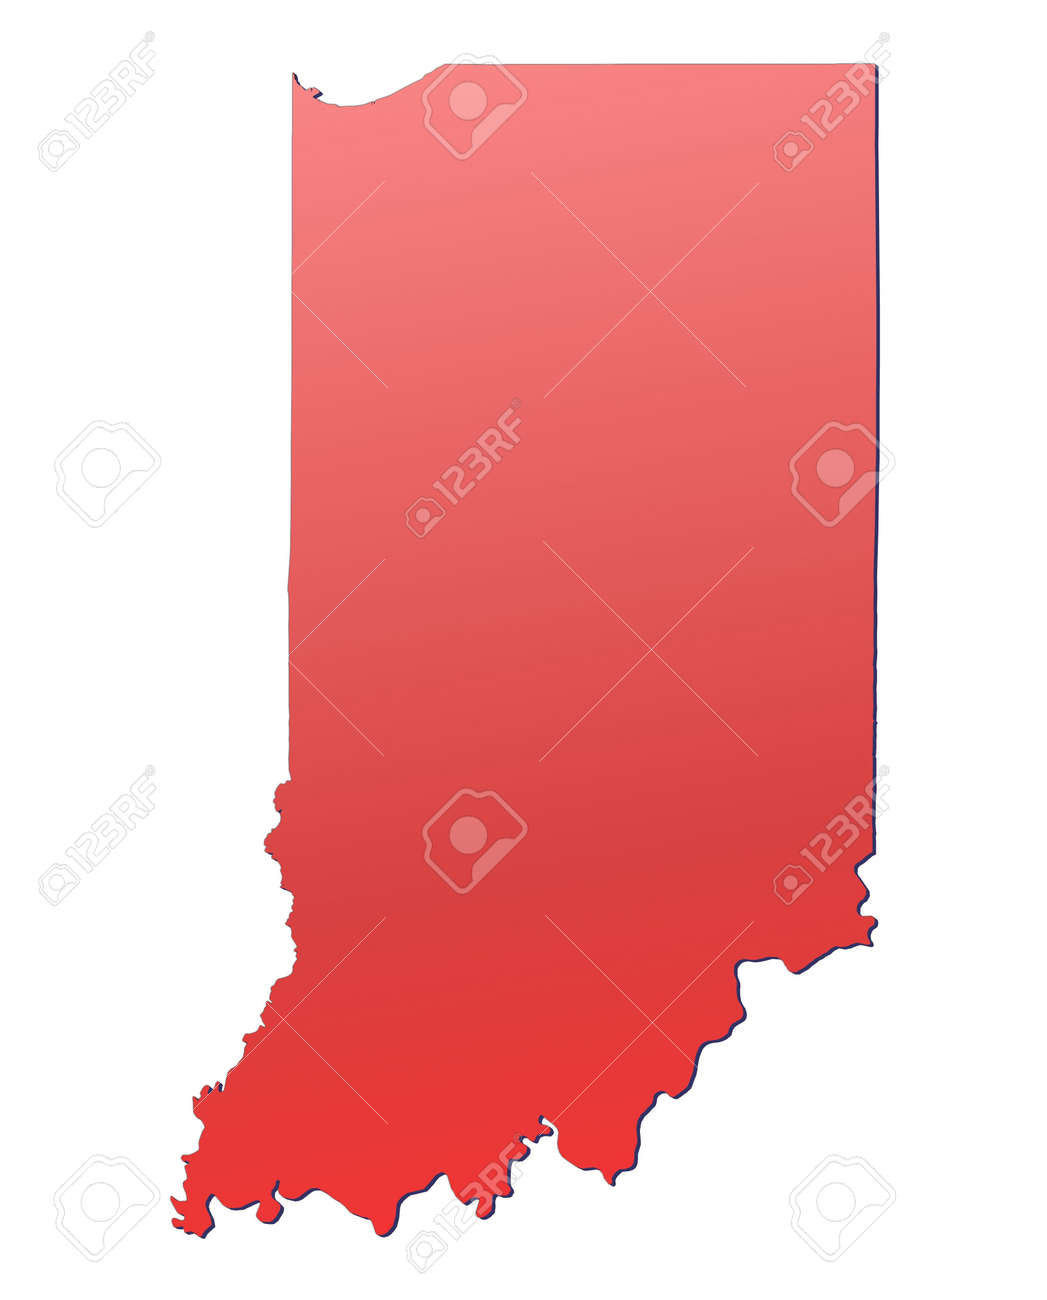 Indiana USA Map Filled With Red Gradient Mercator Projection - Indiana on a map of the usa